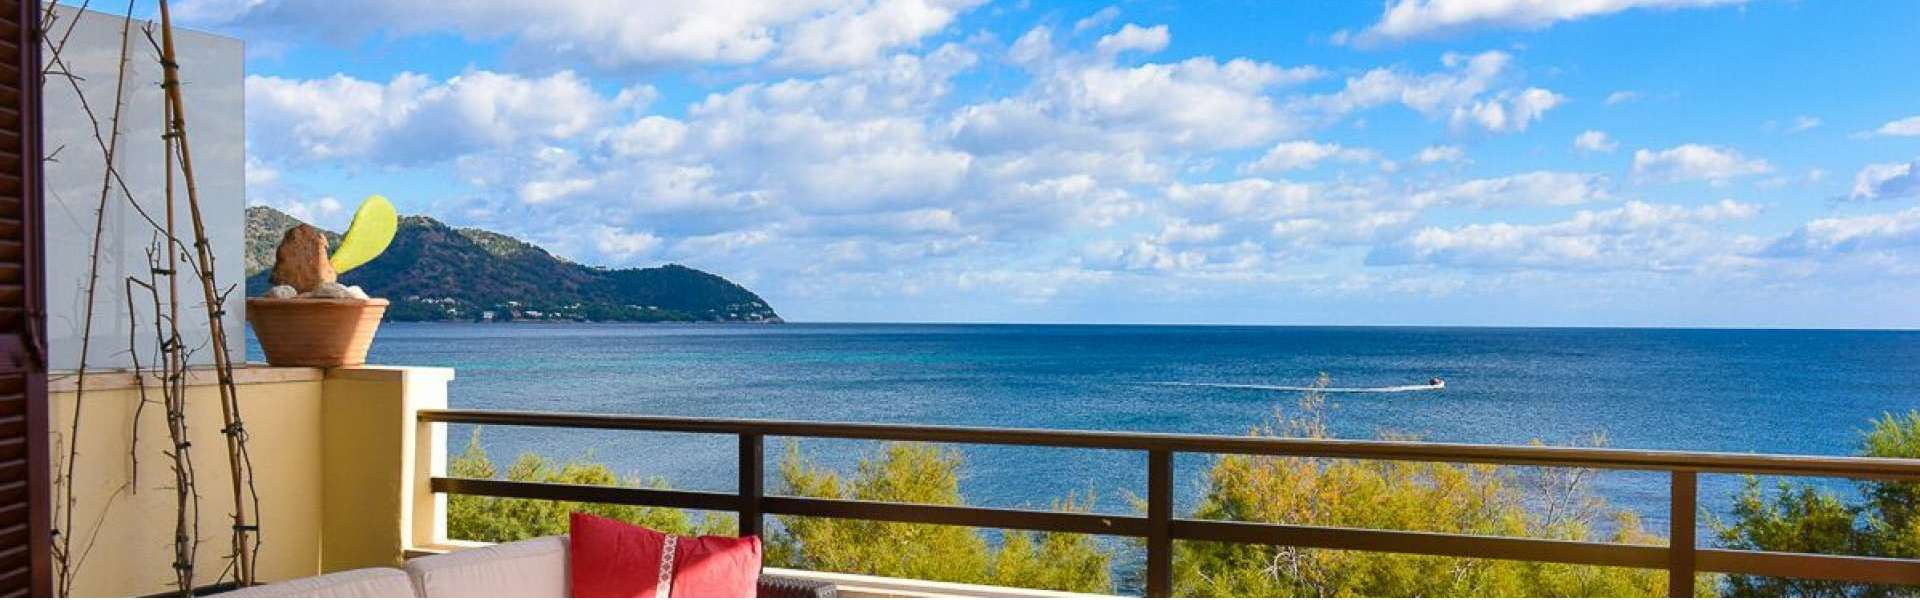 Charming Apartment in First Line of Cala Bona